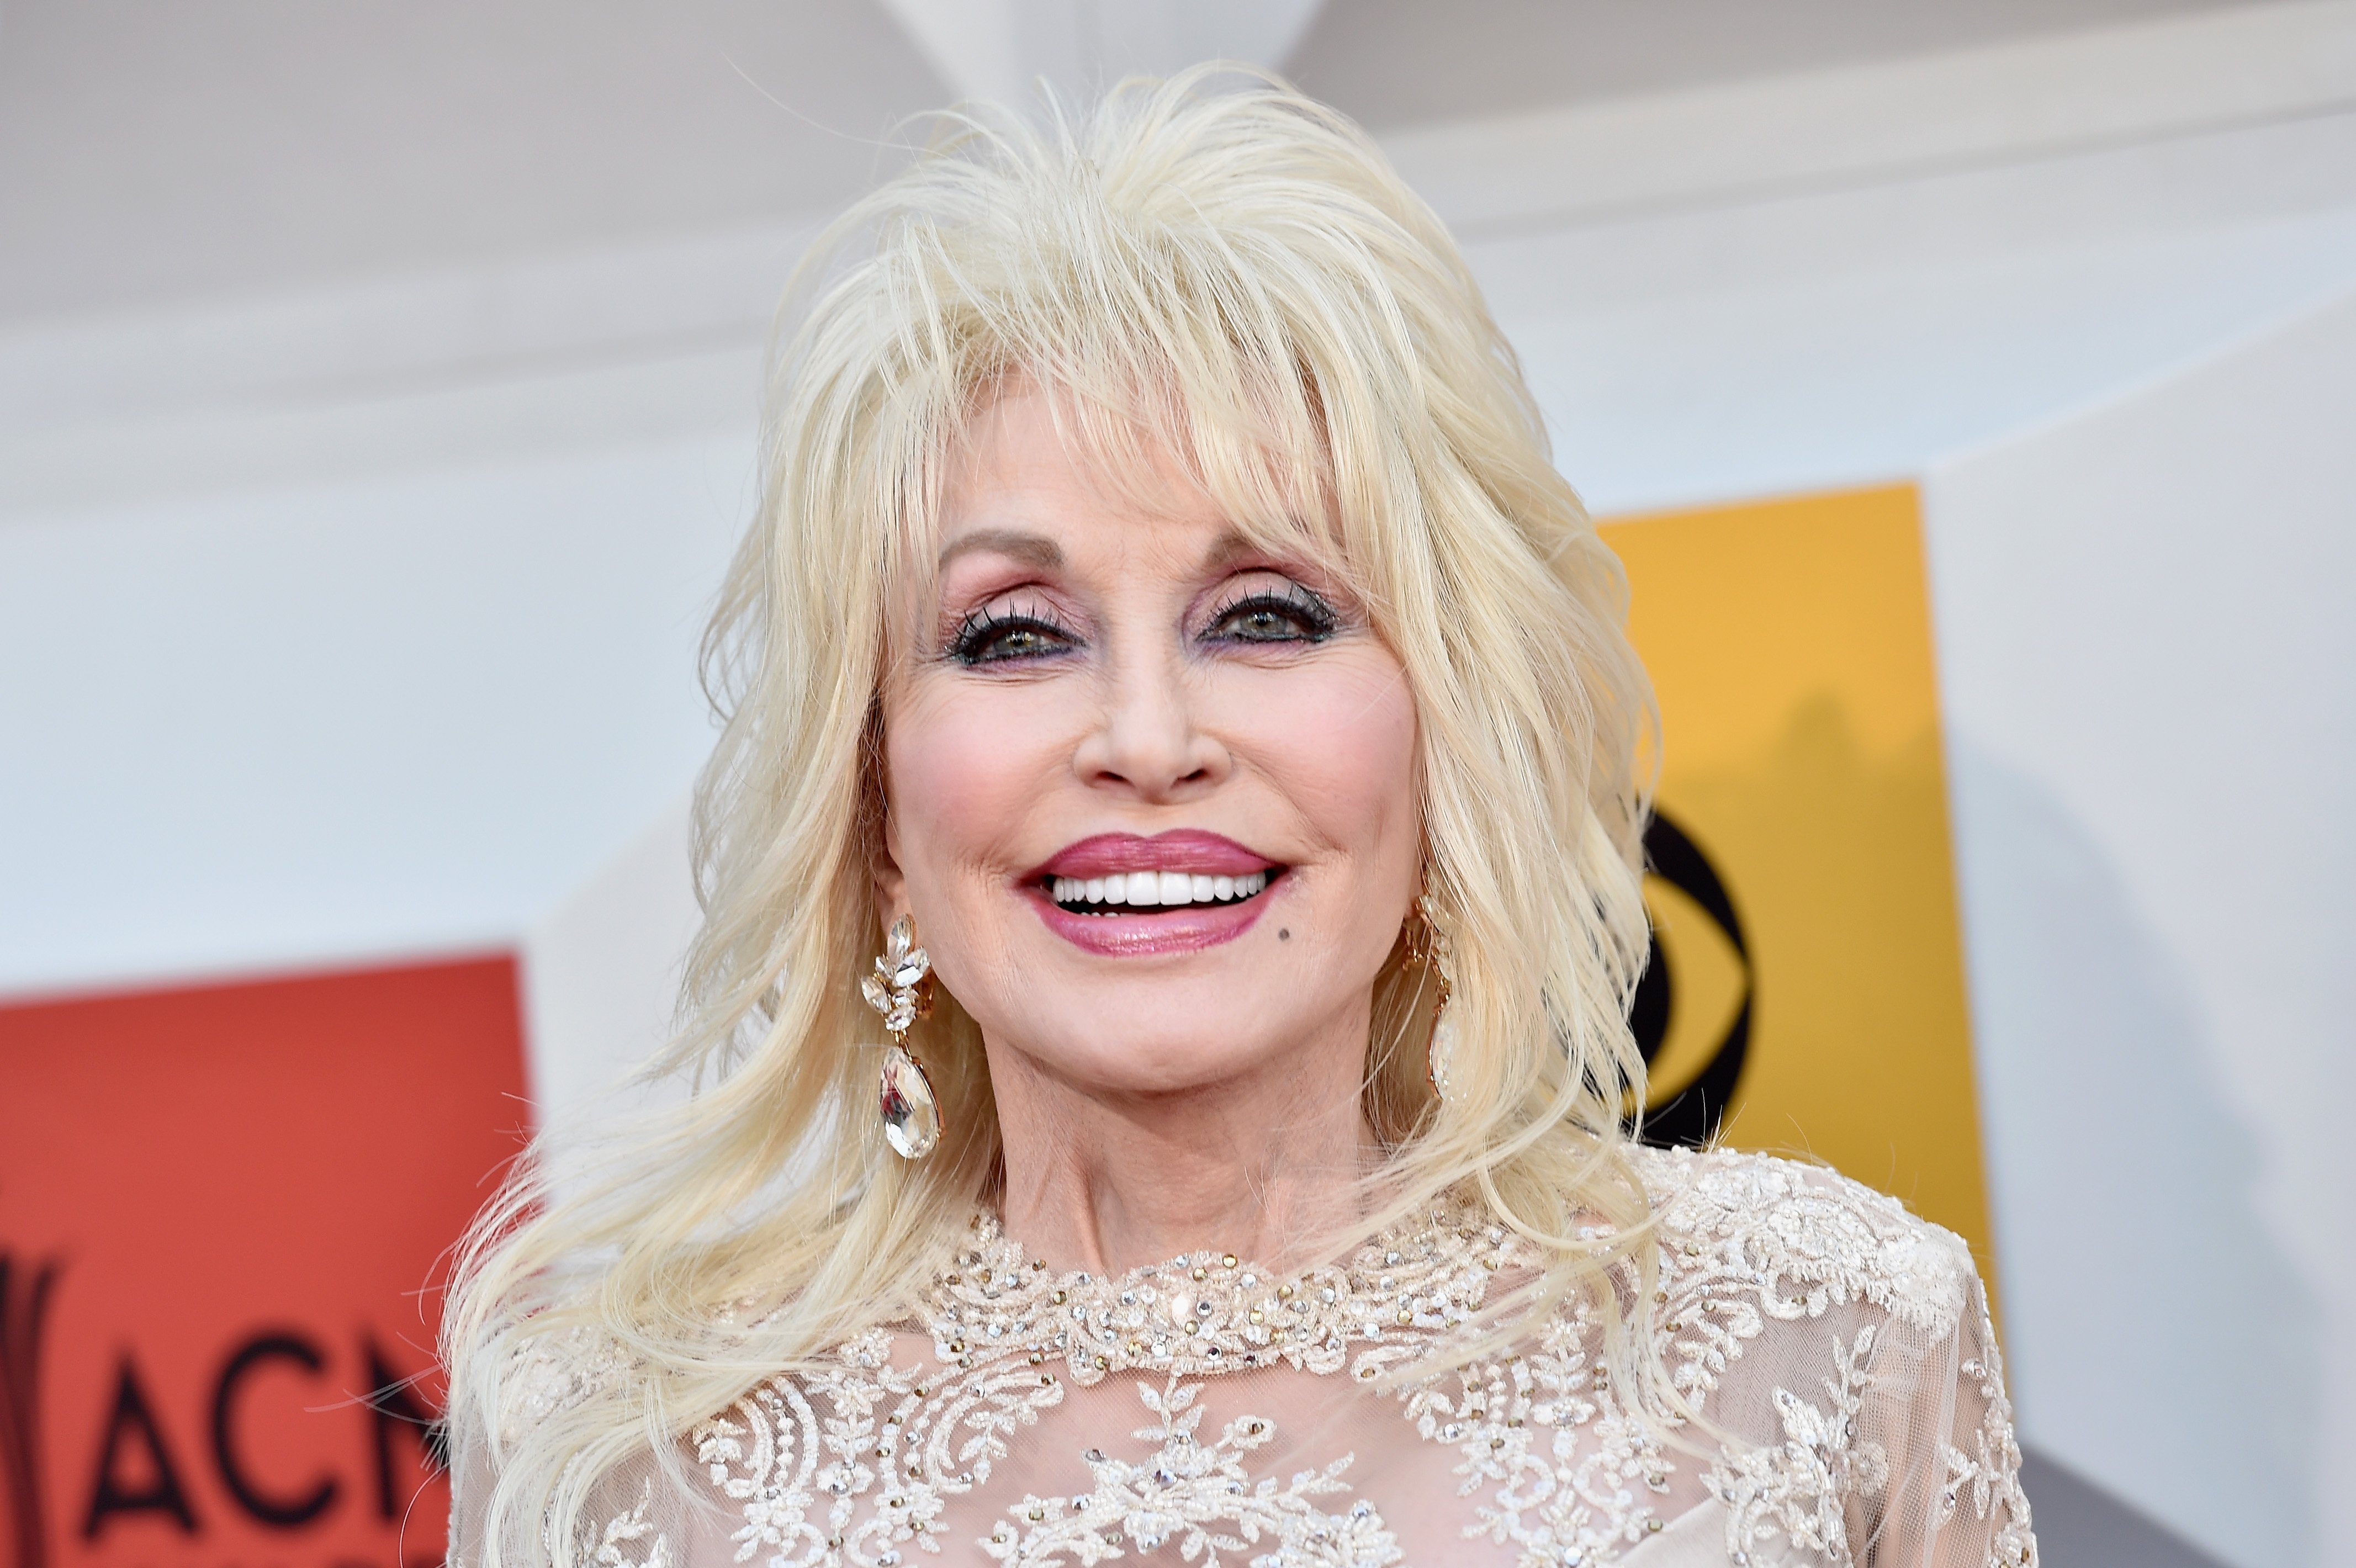 Dolly Parton at the 51st Academy of Country Music Awards at MGM Grand Garden Arena on April 3, 2016 in Las Vegas, Nevada.   Source: Getty Images